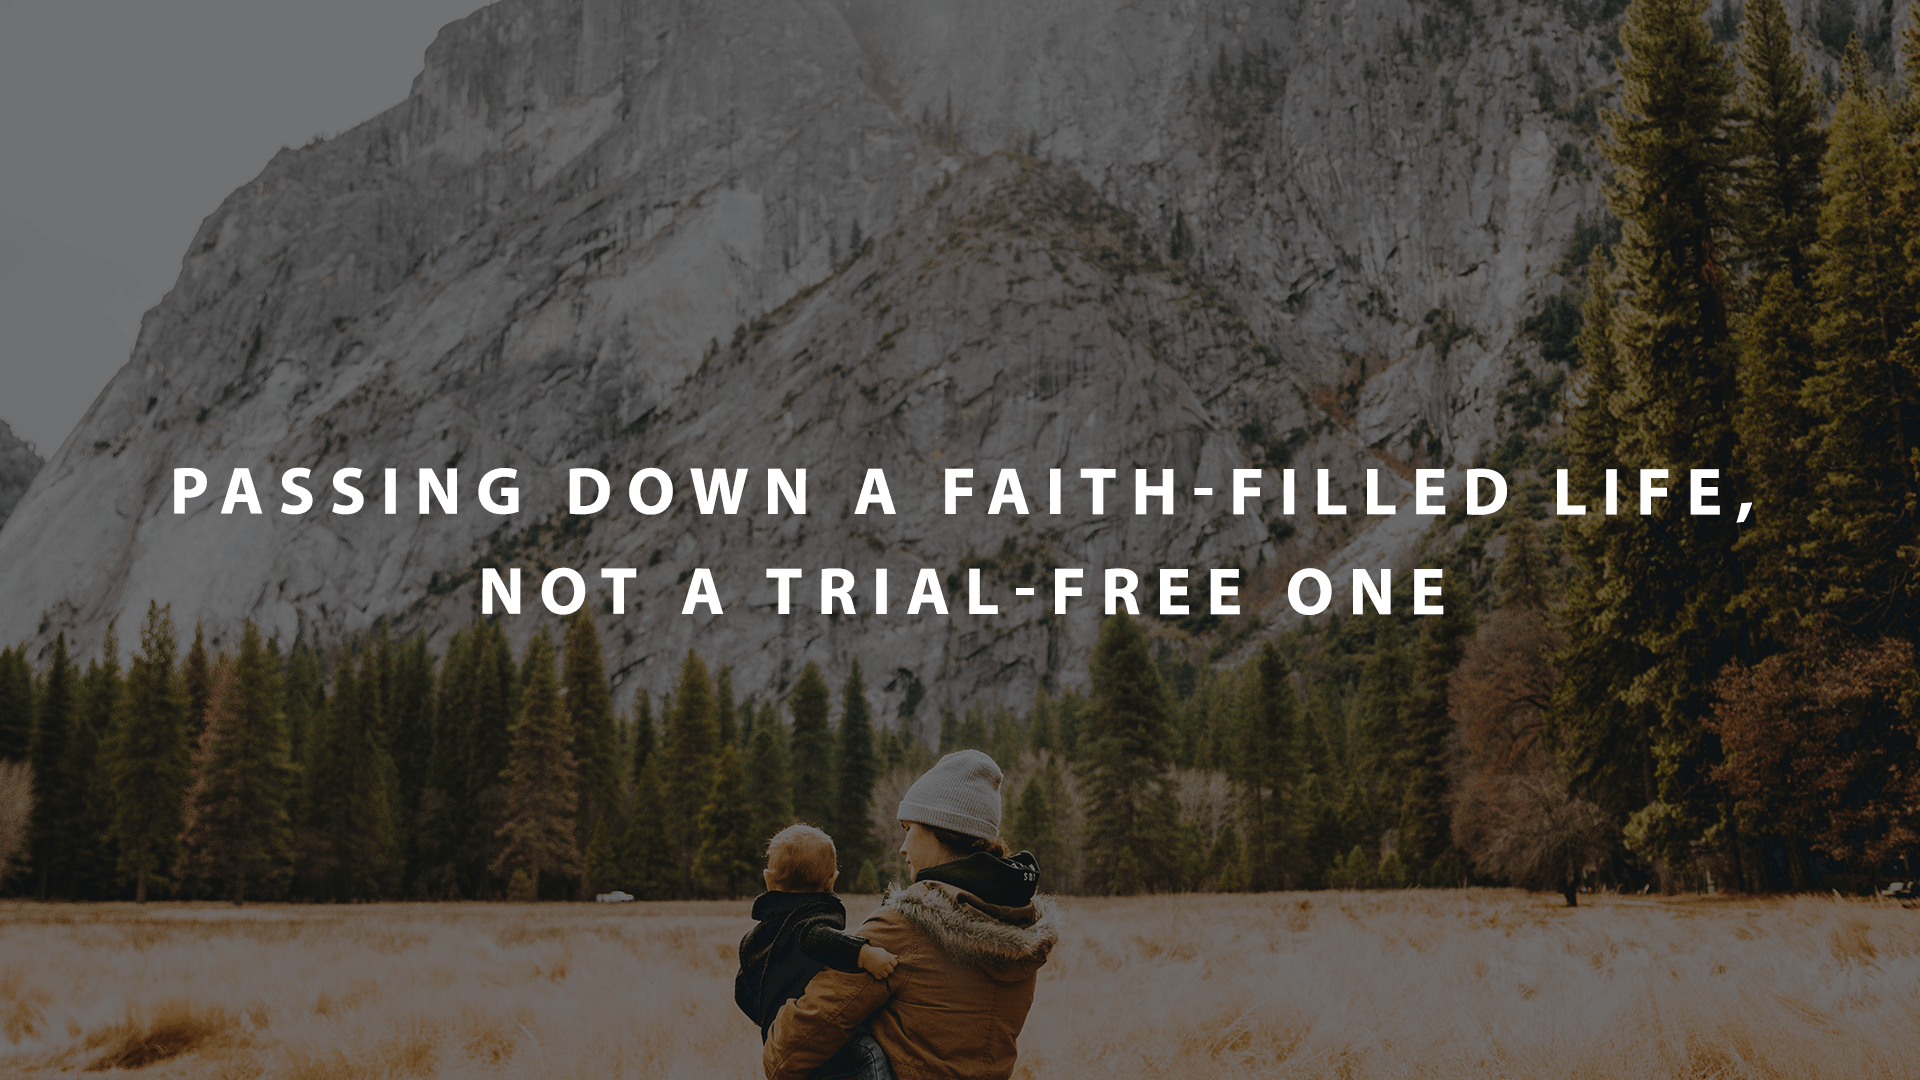 Passing down a faith filled life not a trial free one